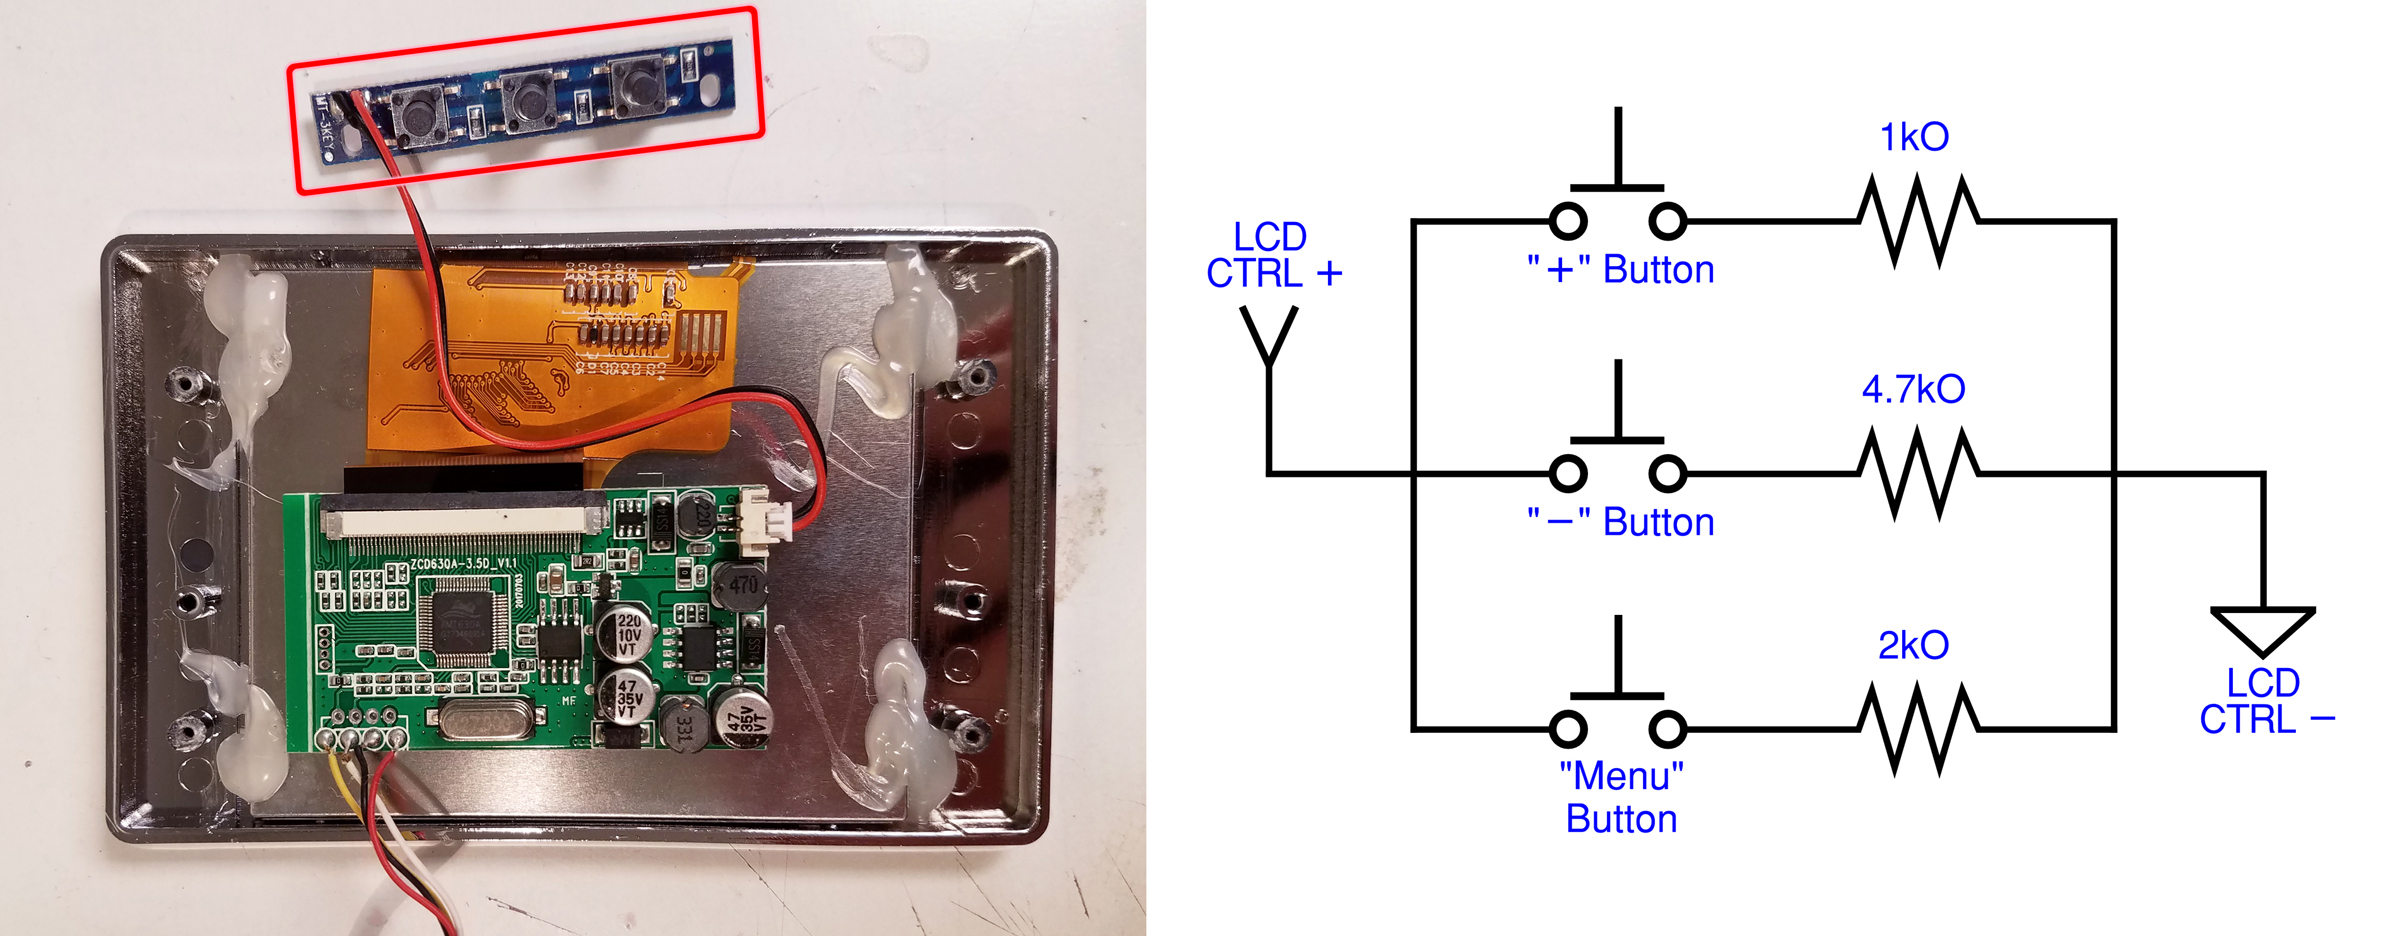 Sega Nomad Lcd Upgrade Part 2 Wr Labs Wiring Diagram Menu Sign Since The Buttons Are On A Separate Pcb I Decided To Discard It And Just Copy Its Design Into My New Circuit Rub However Is That Bjt Transistors